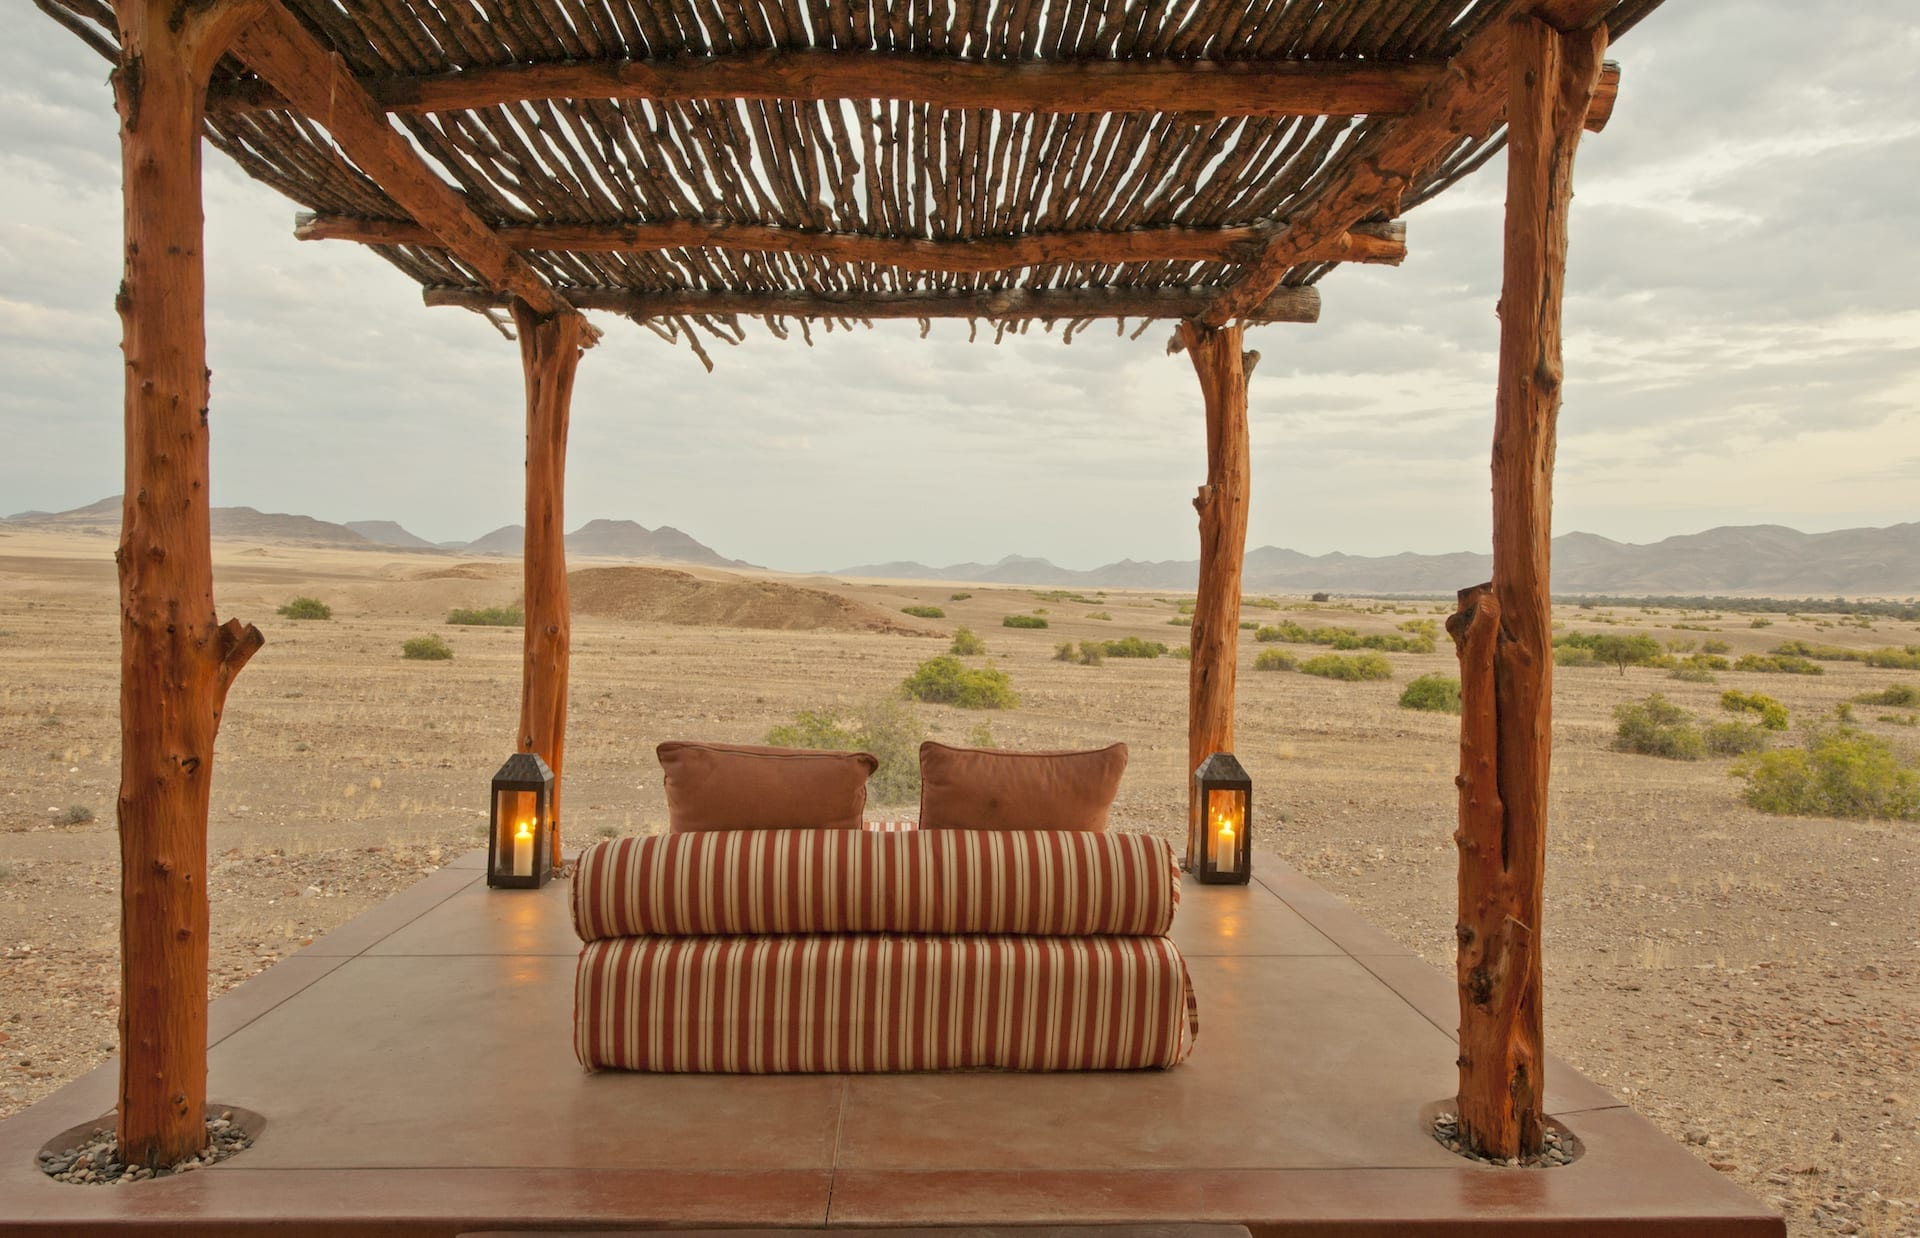 # FOTO - Okahirongo Elephant Lodge - 201111_okahirongo_7505